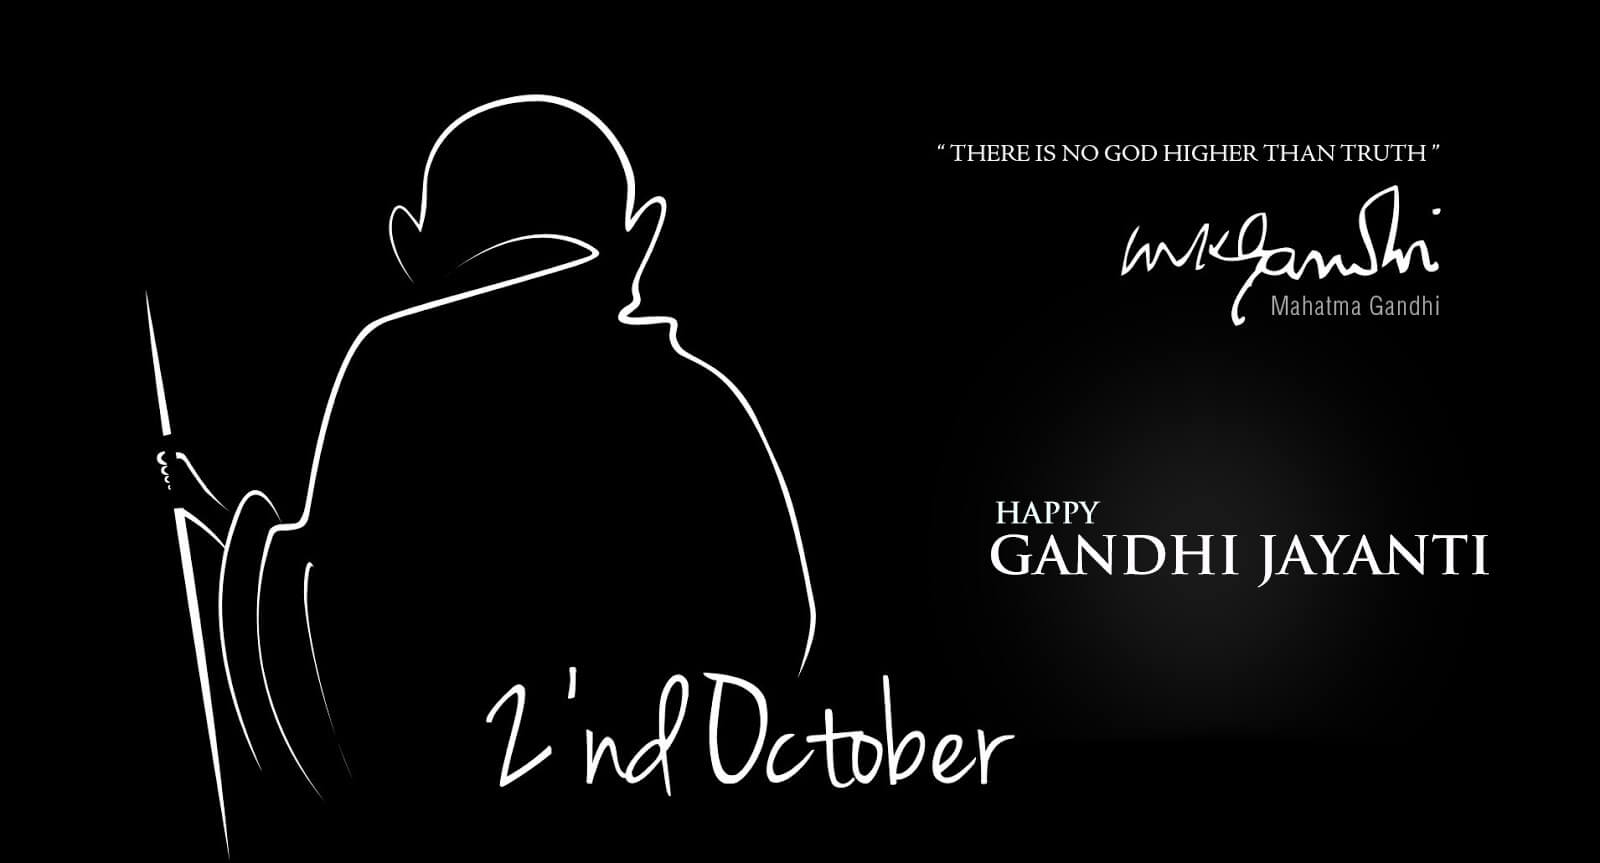 gandhi jayanti quotes october 2 hd image wallpaper